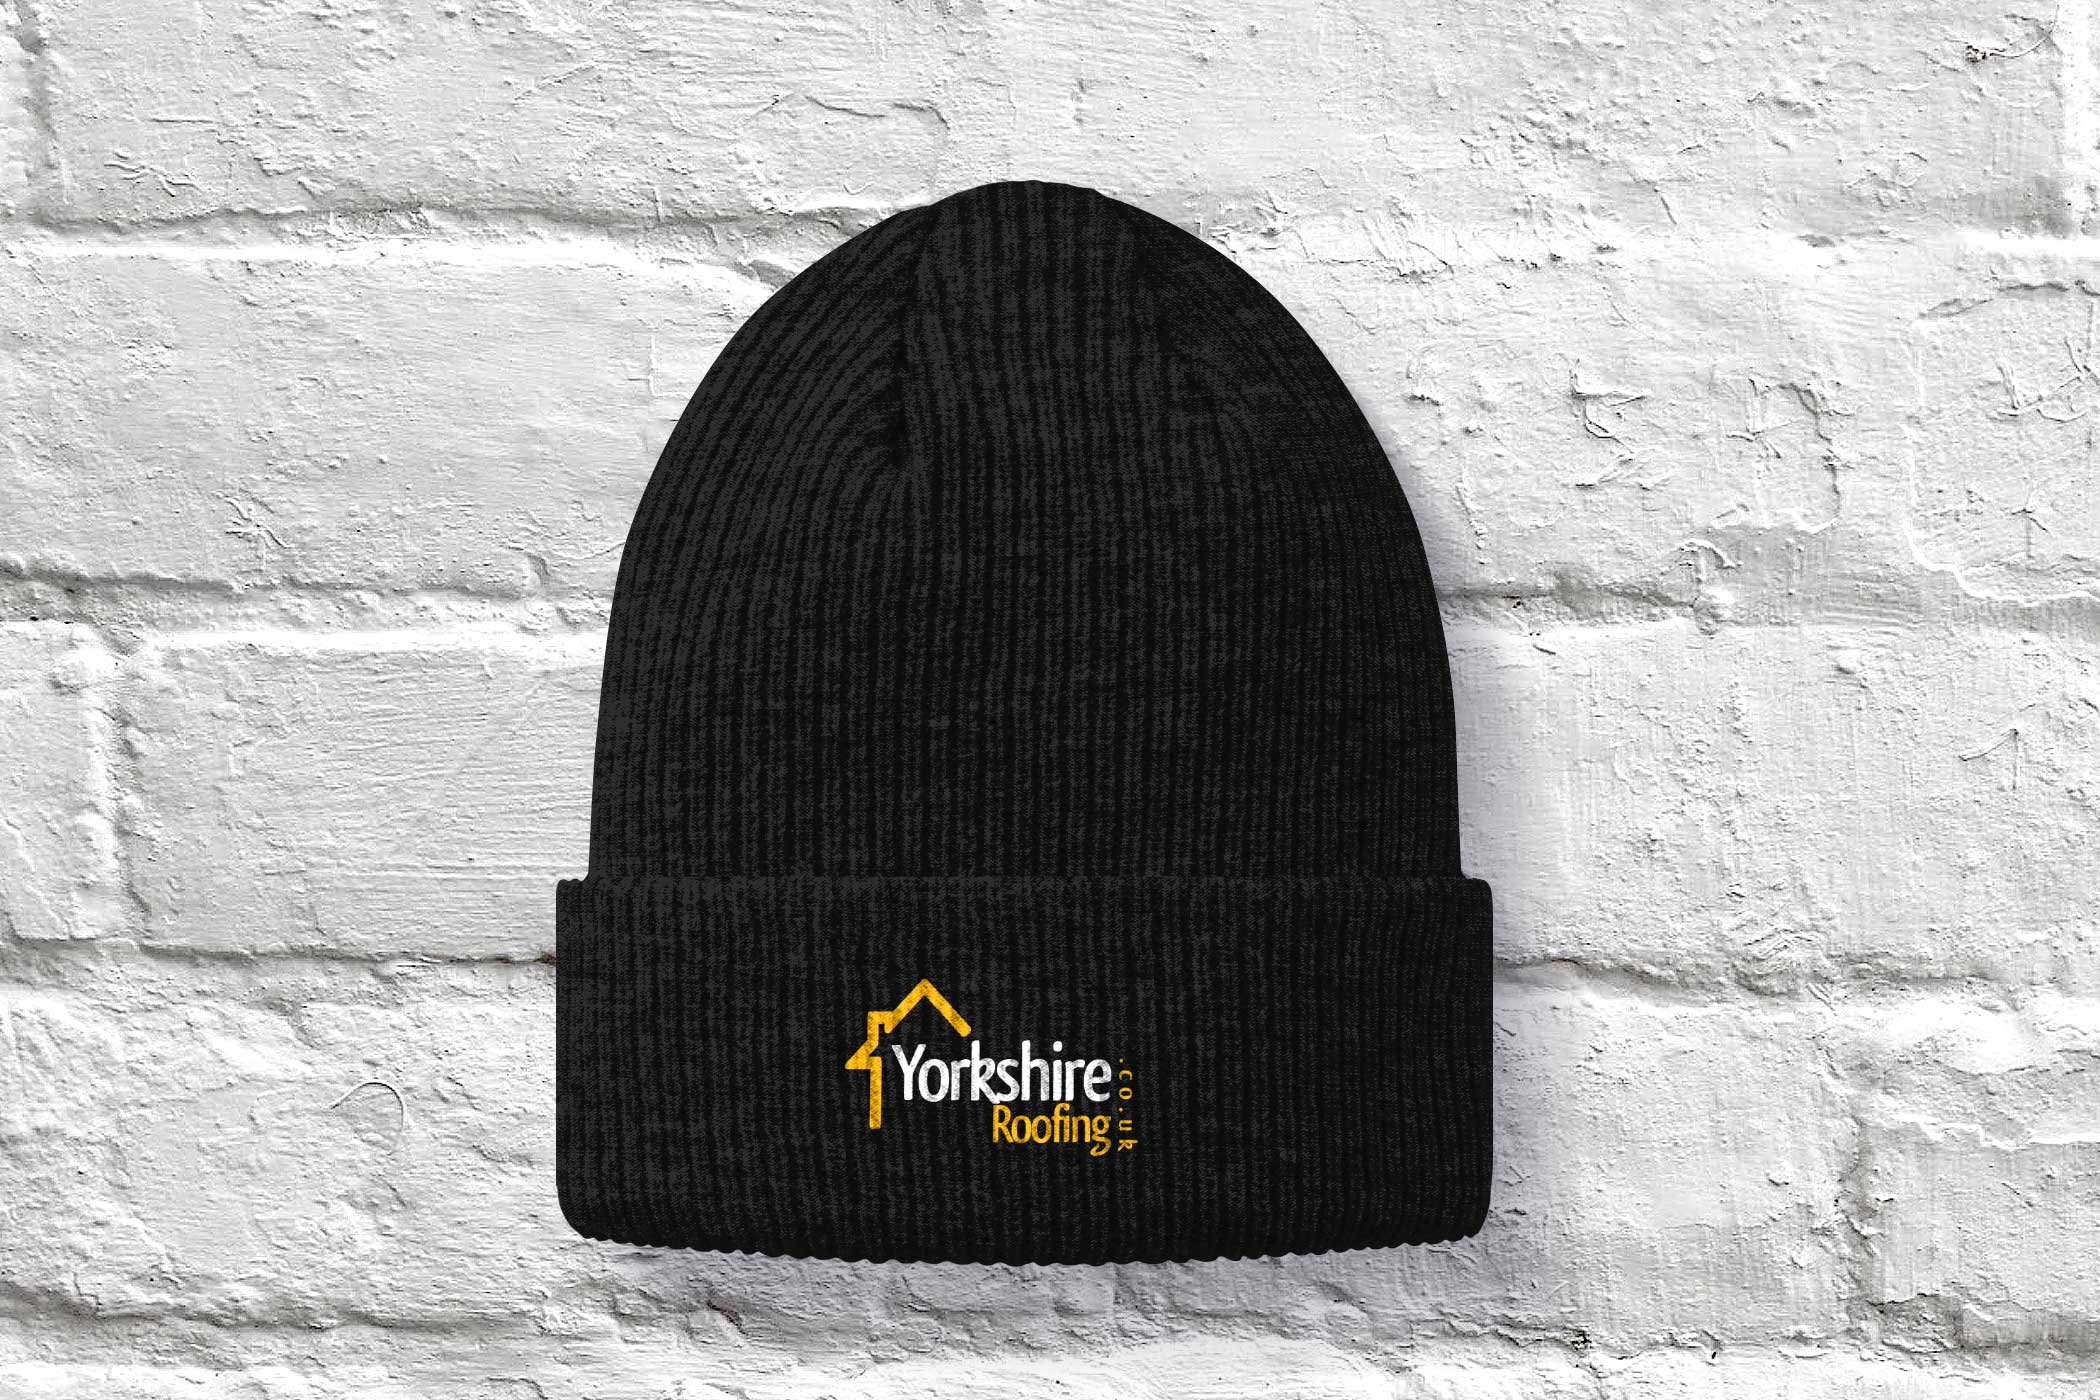 Yorkshire Roofing Beanie Hat